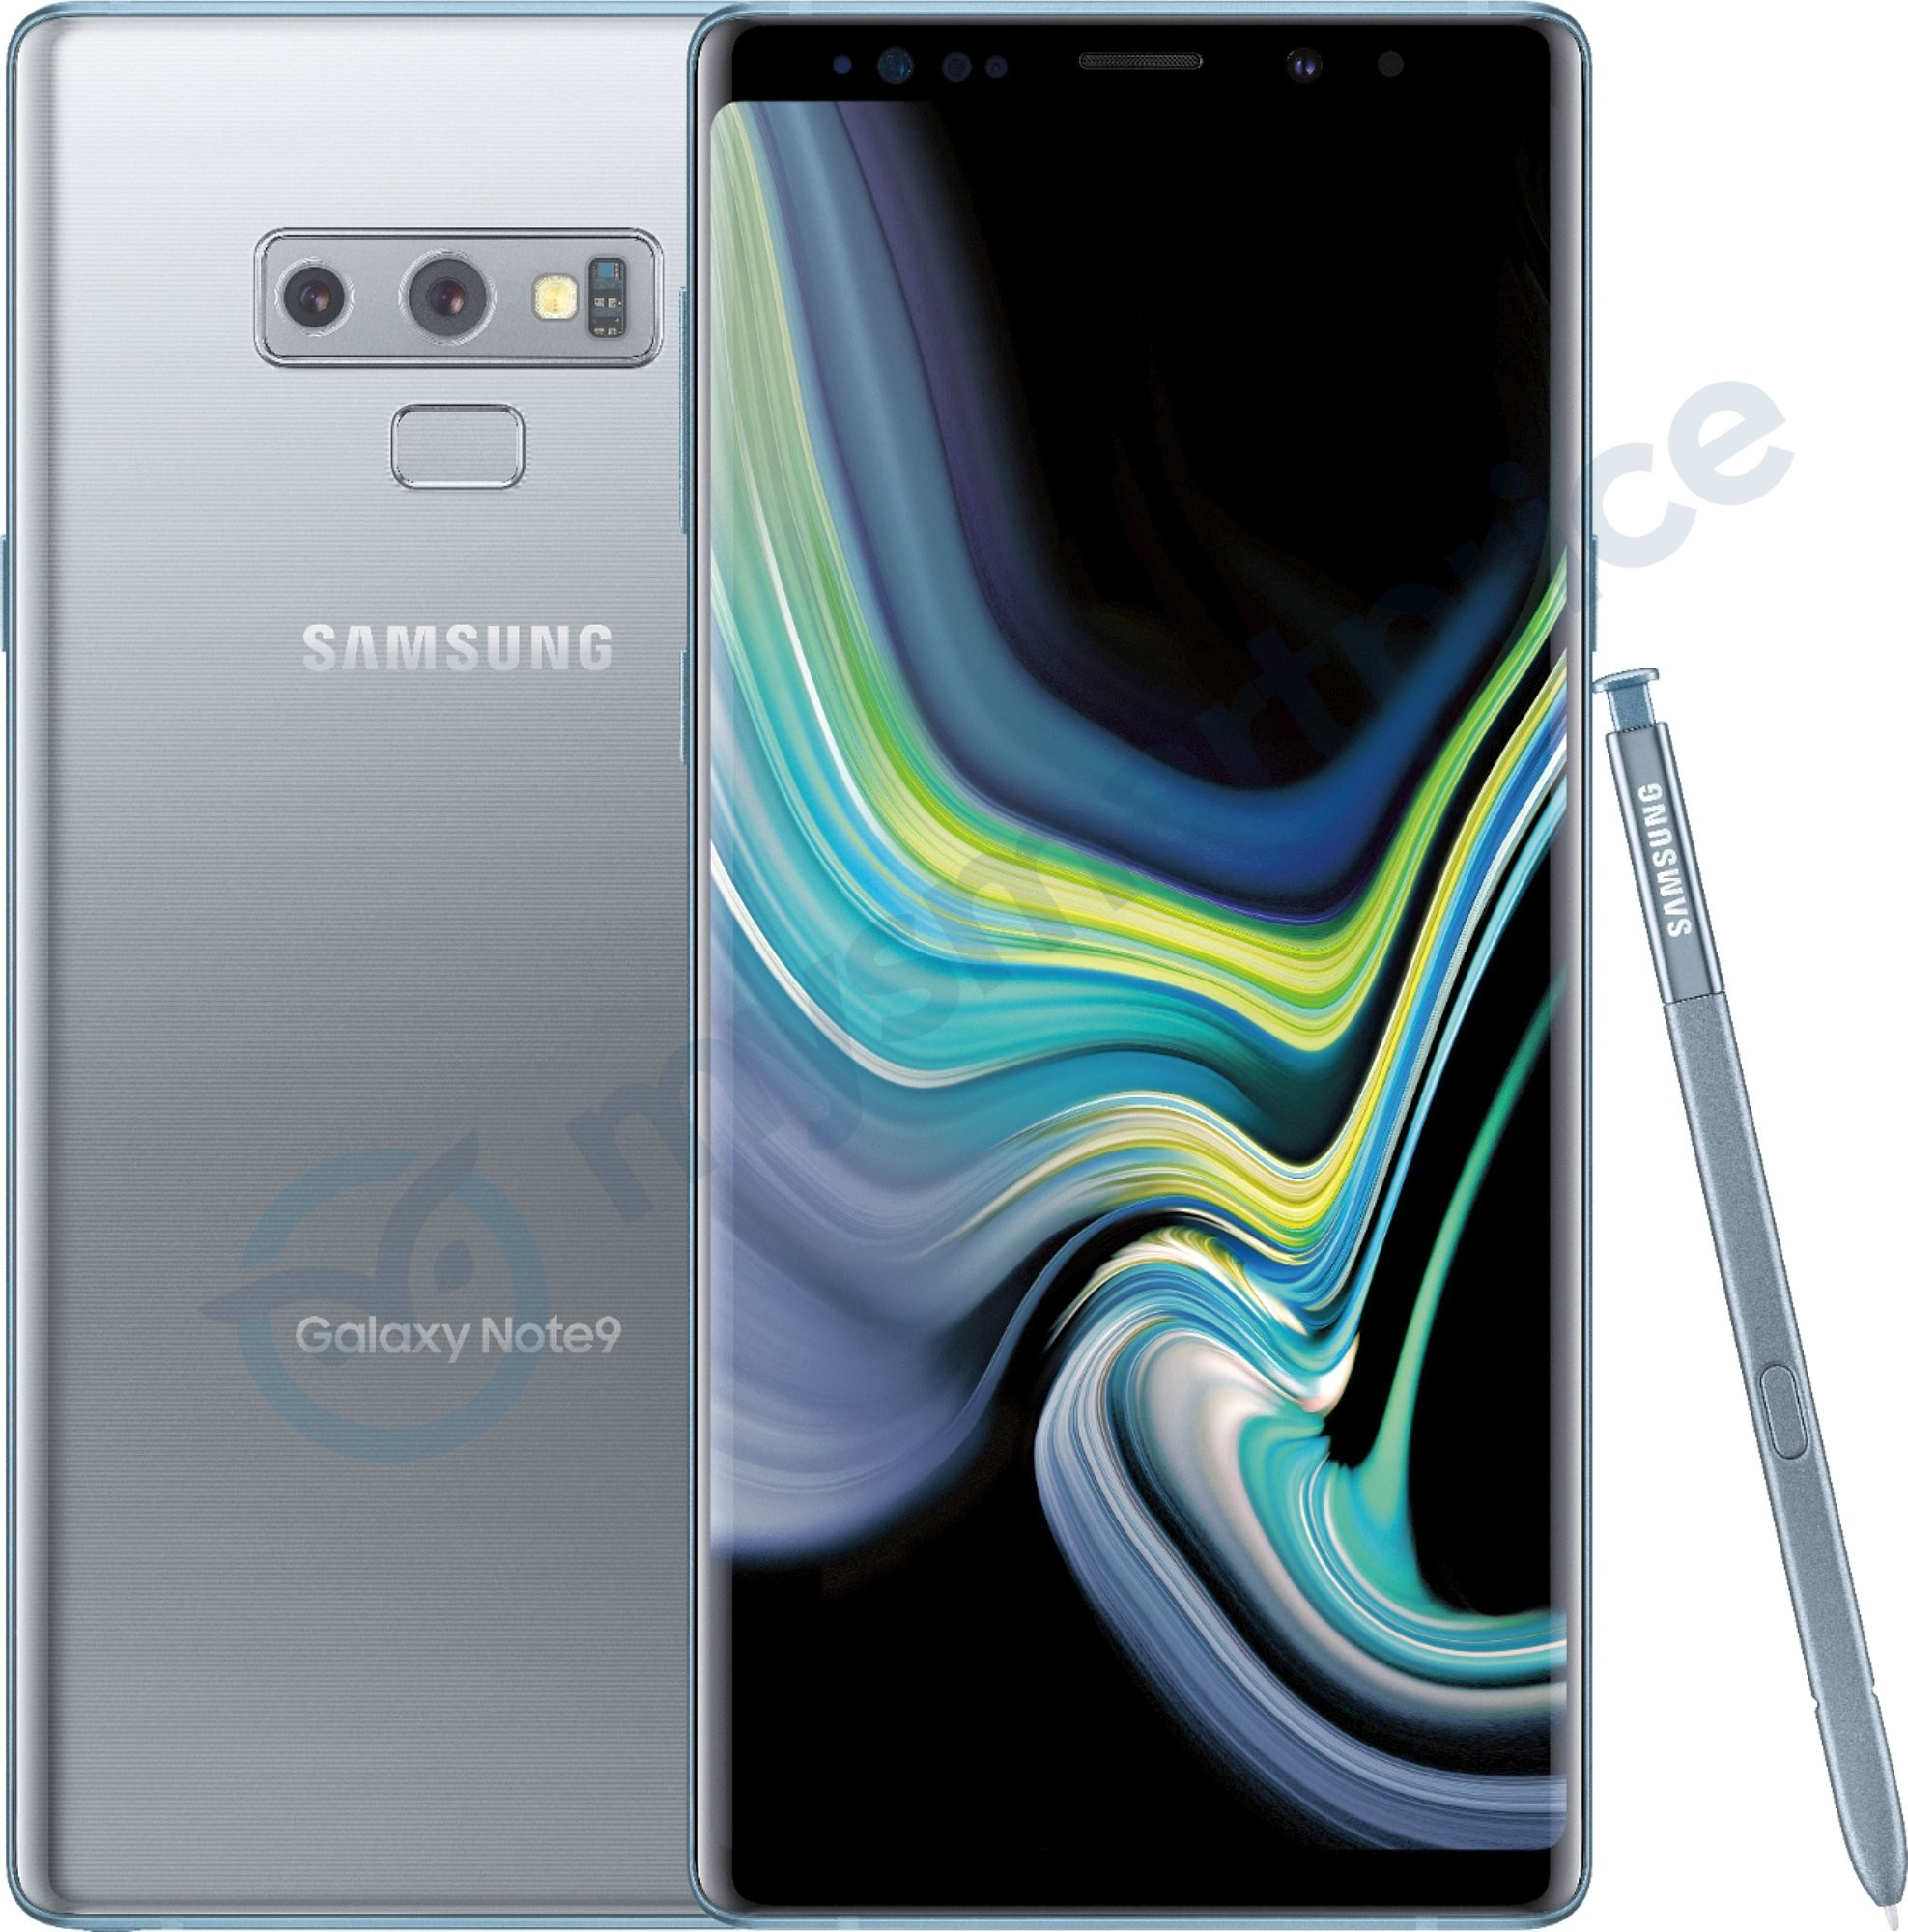 Huge demand for 512GB Samsung Galaxy Note 9